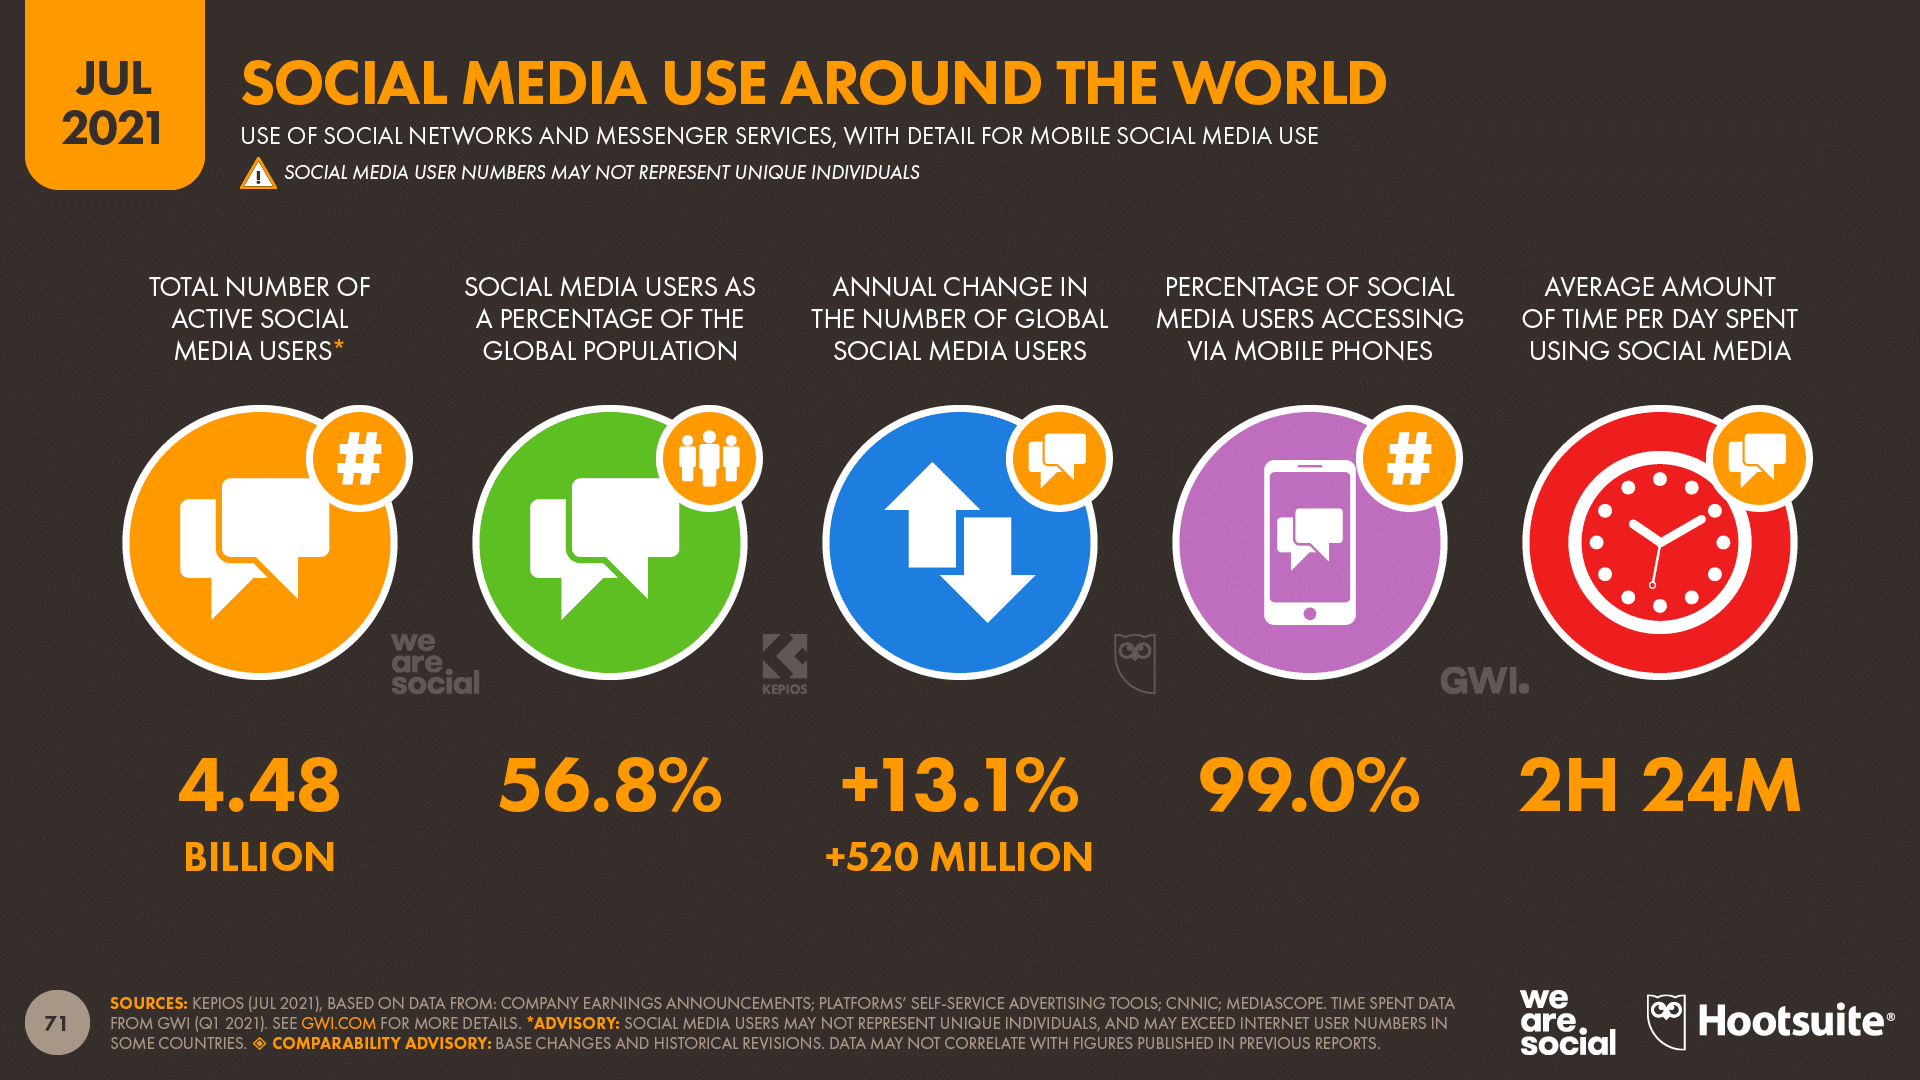 chart showing social media use around the world as of July 2021